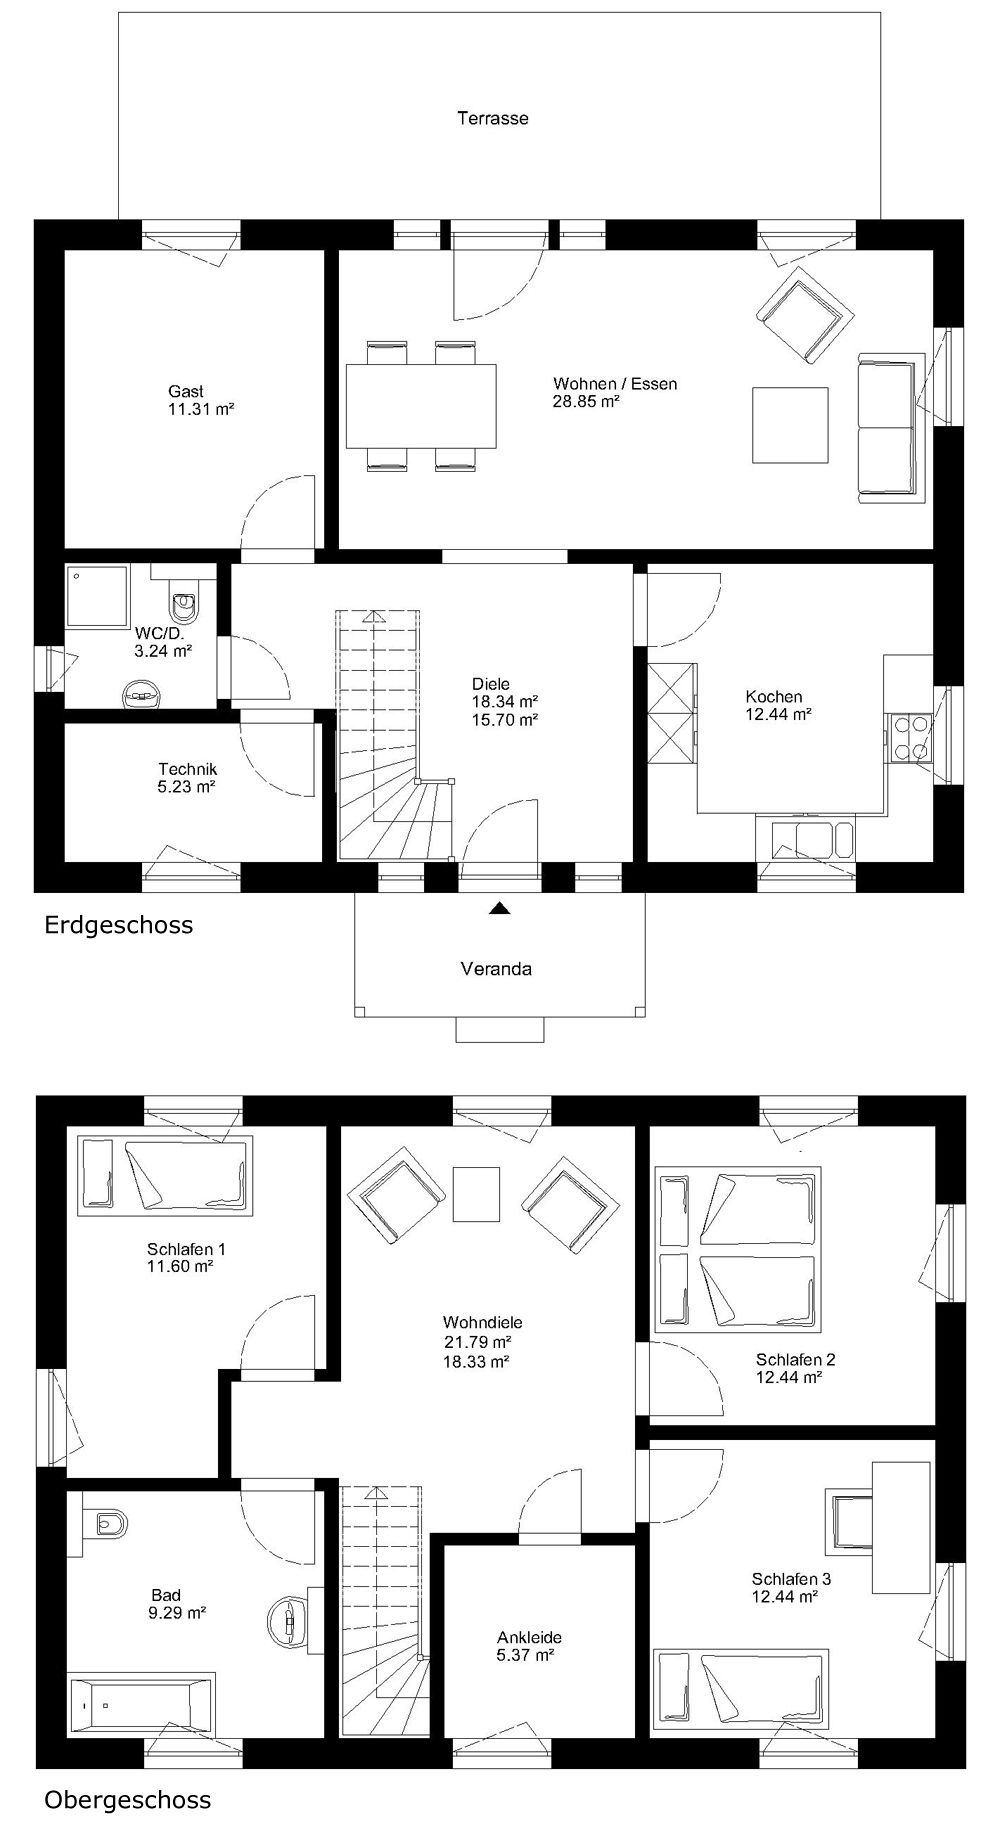 max haus 2 geschossig vermont floorplan pinterest grundrisse schwedenhaus und. Black Bedroom Furniture Sets. Home Design Ideas